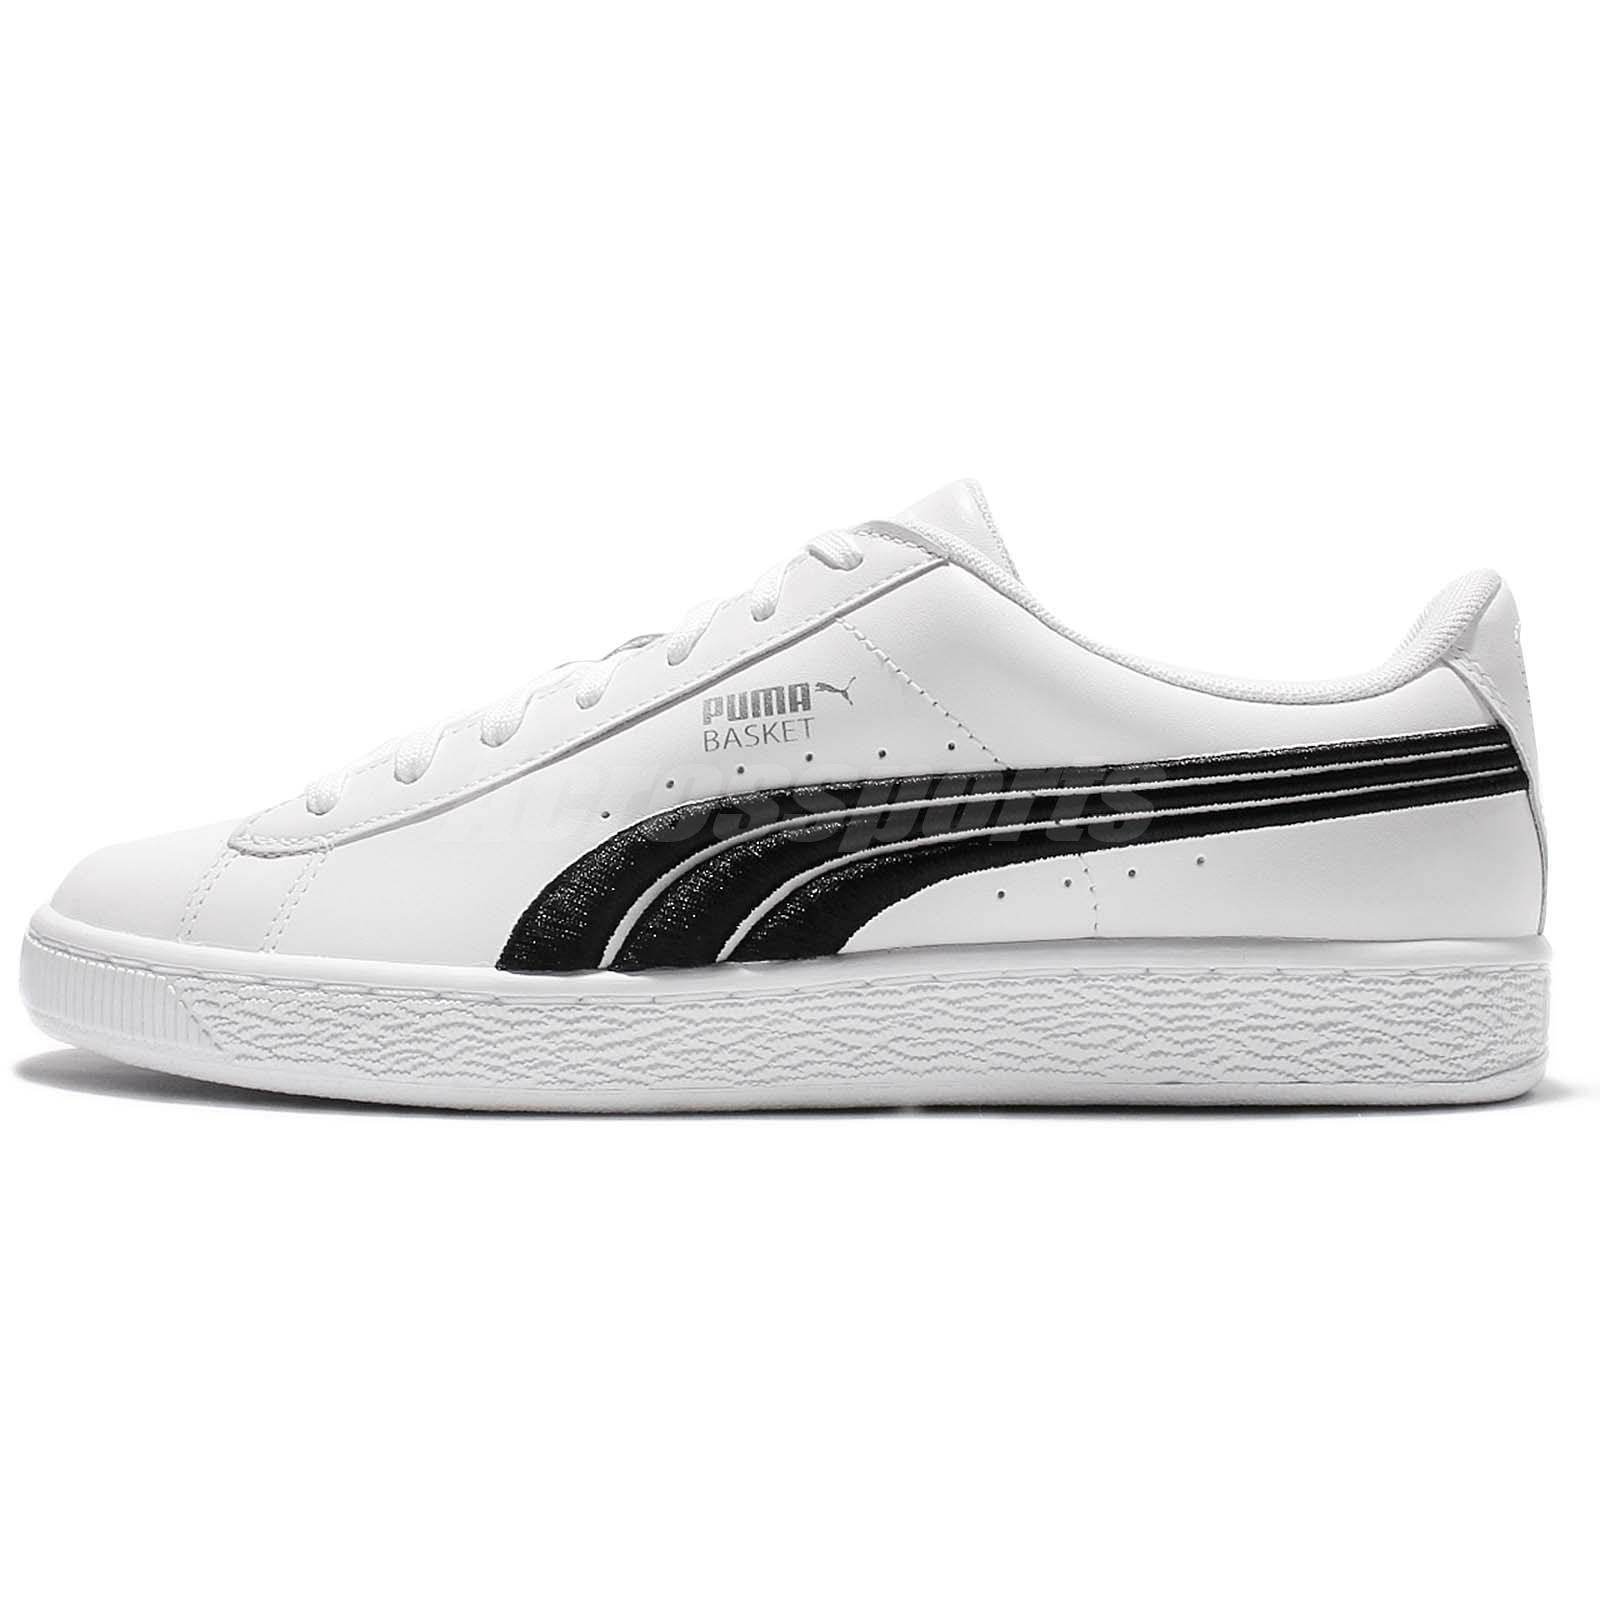 f562c34ff1765b Puma Basket Classic Badge White Black Low Men Casual Shoes Sneakers  362550-01